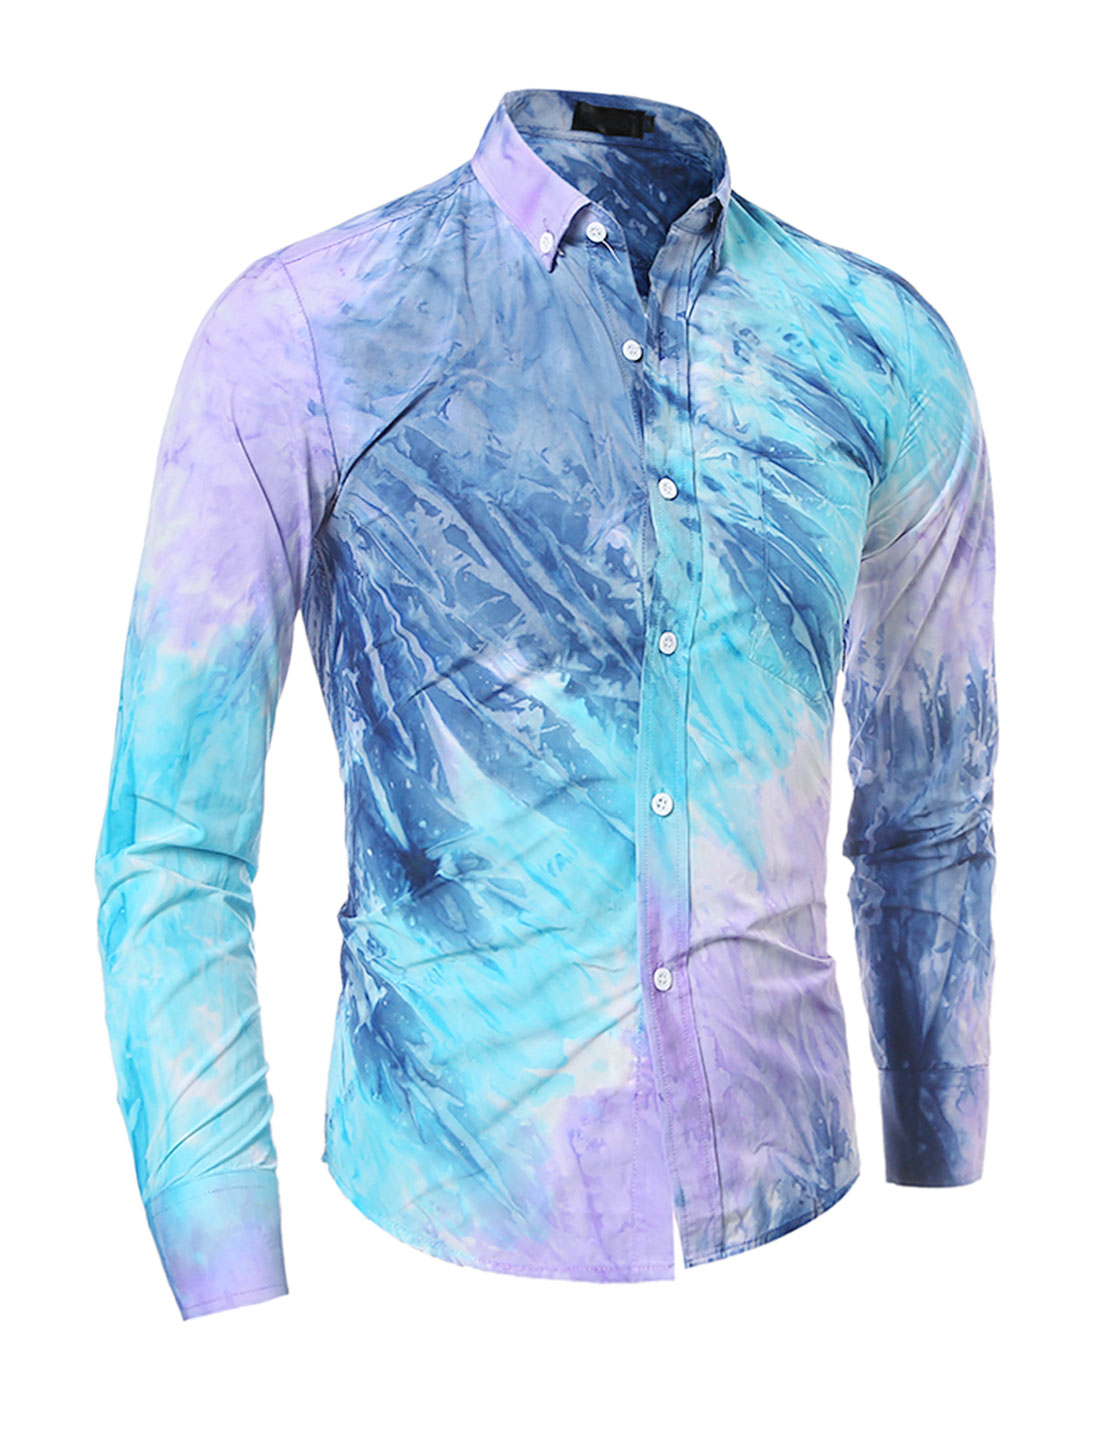 Man Chest Pocket Tie-Dye Slim Fit Buttoned Shirt Purple S